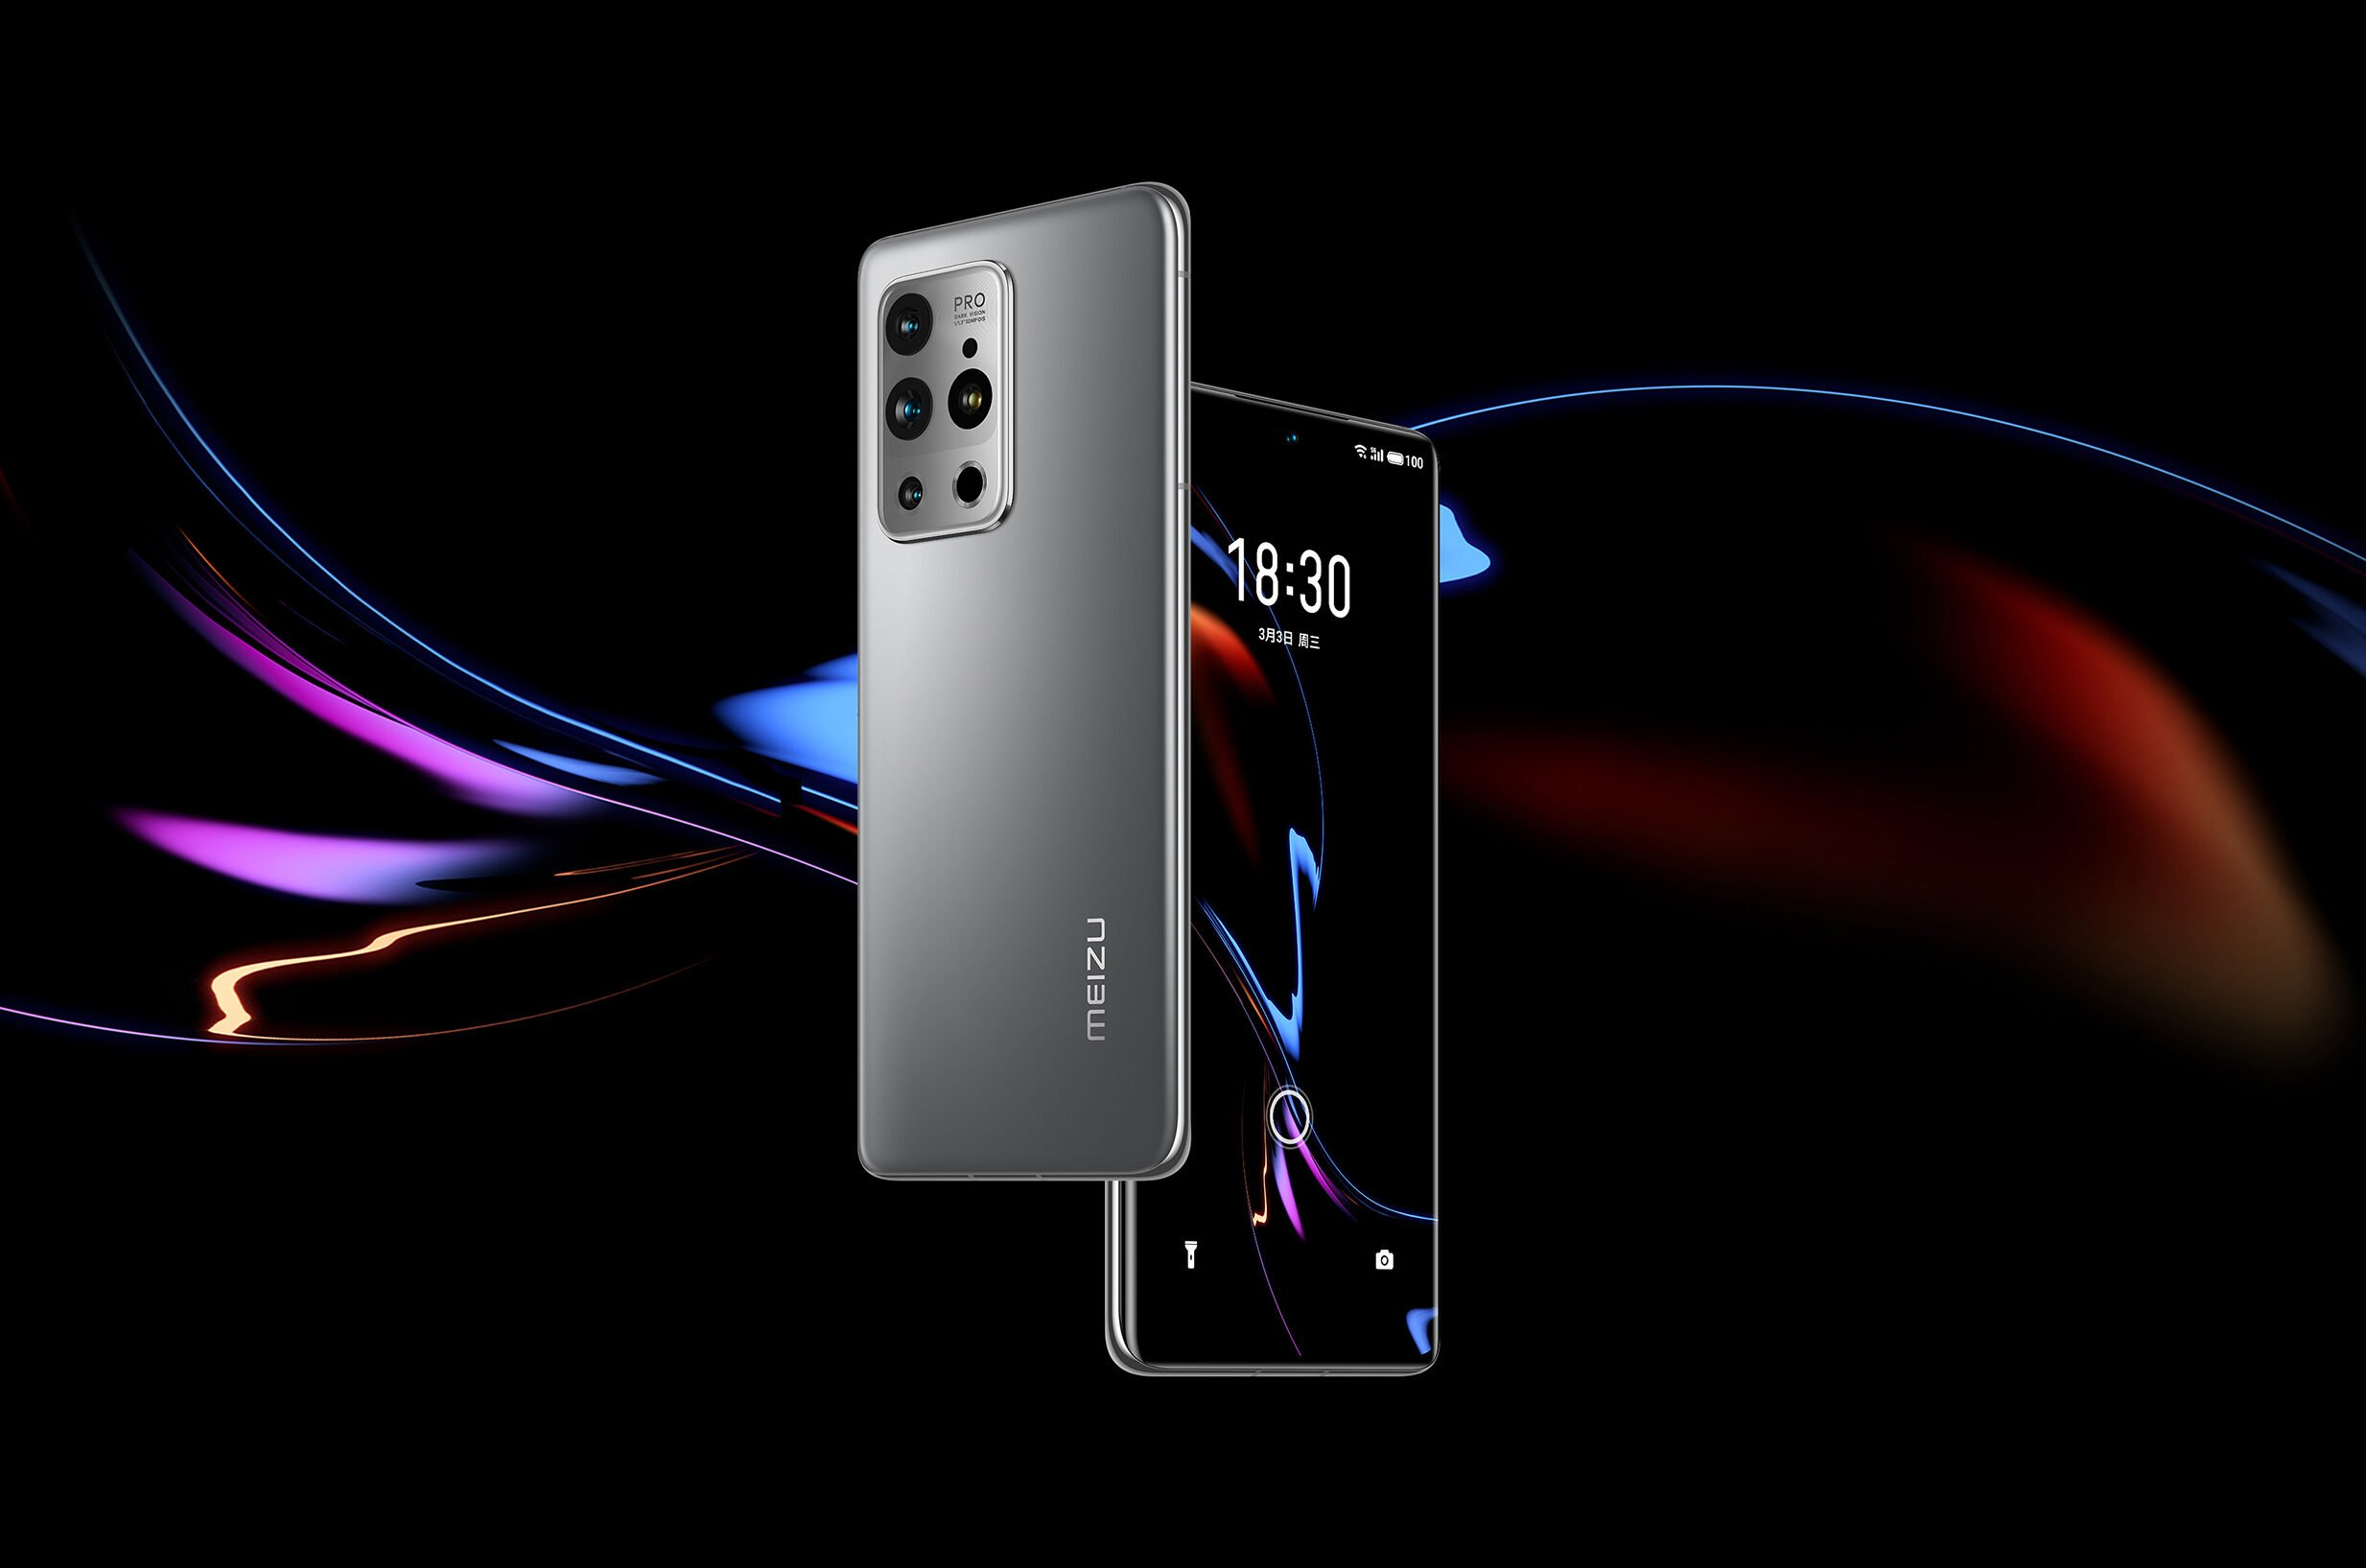 Meizu 18 series to get 2K+120Hz mode and more via OTA update on April 2